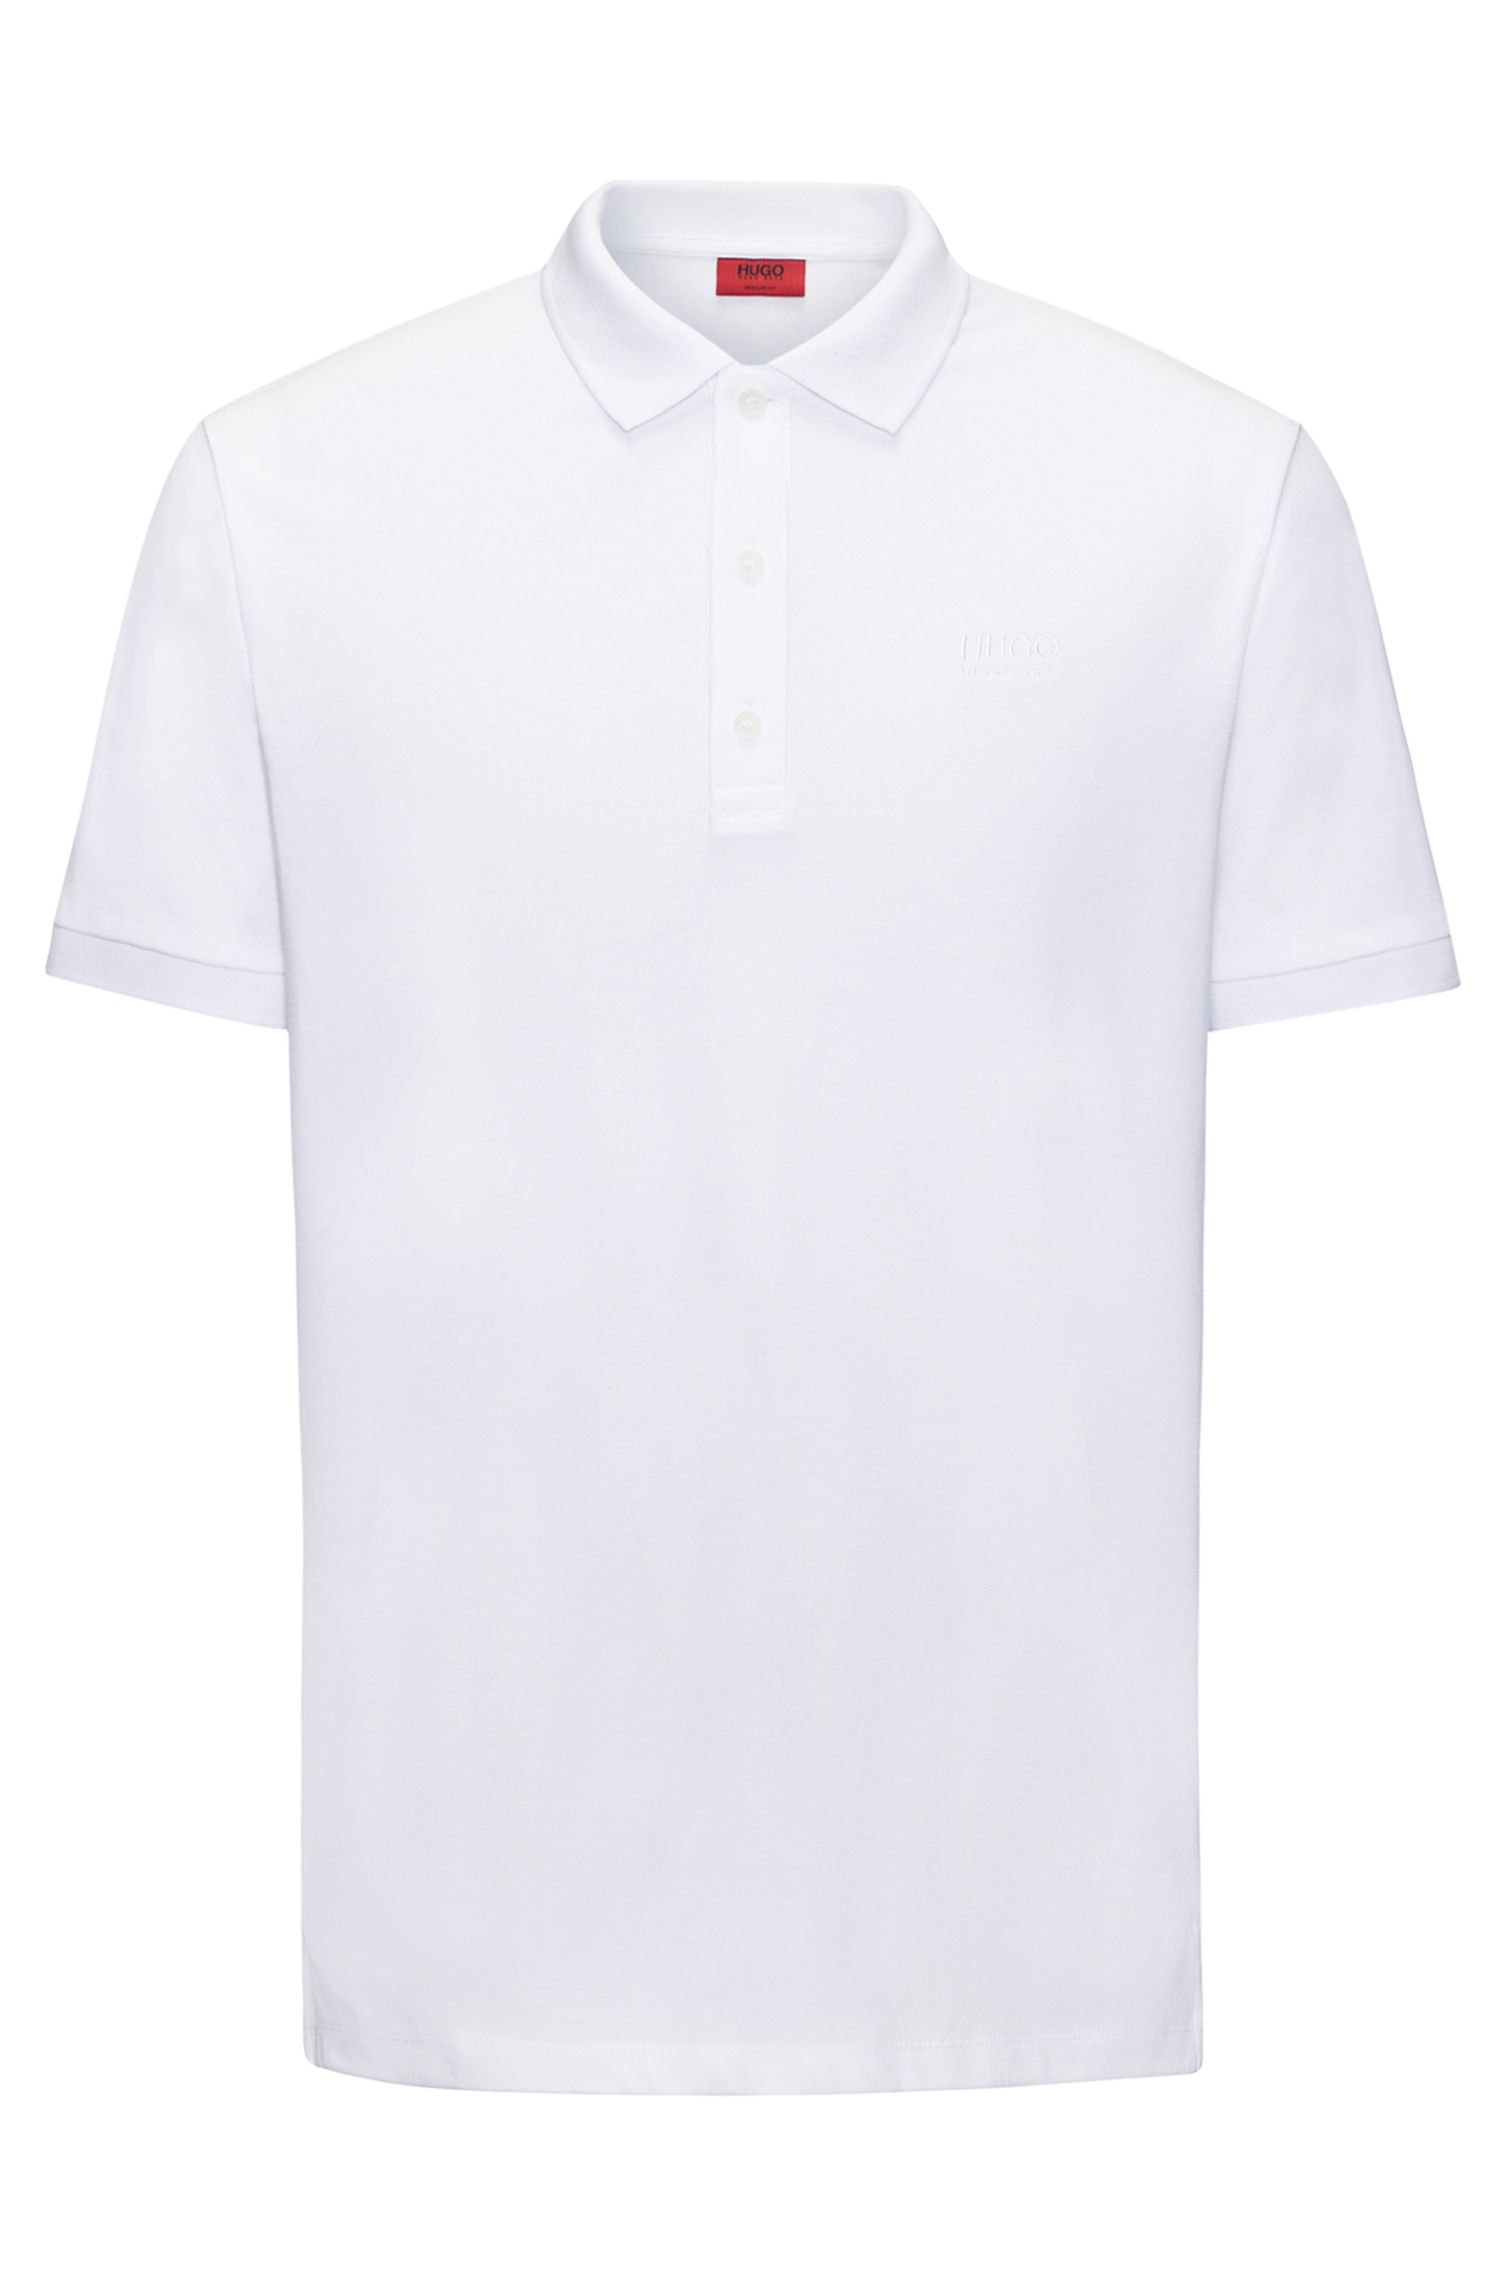 Regular-Fit Poloshirt aus softer Baumwolle, Weiß